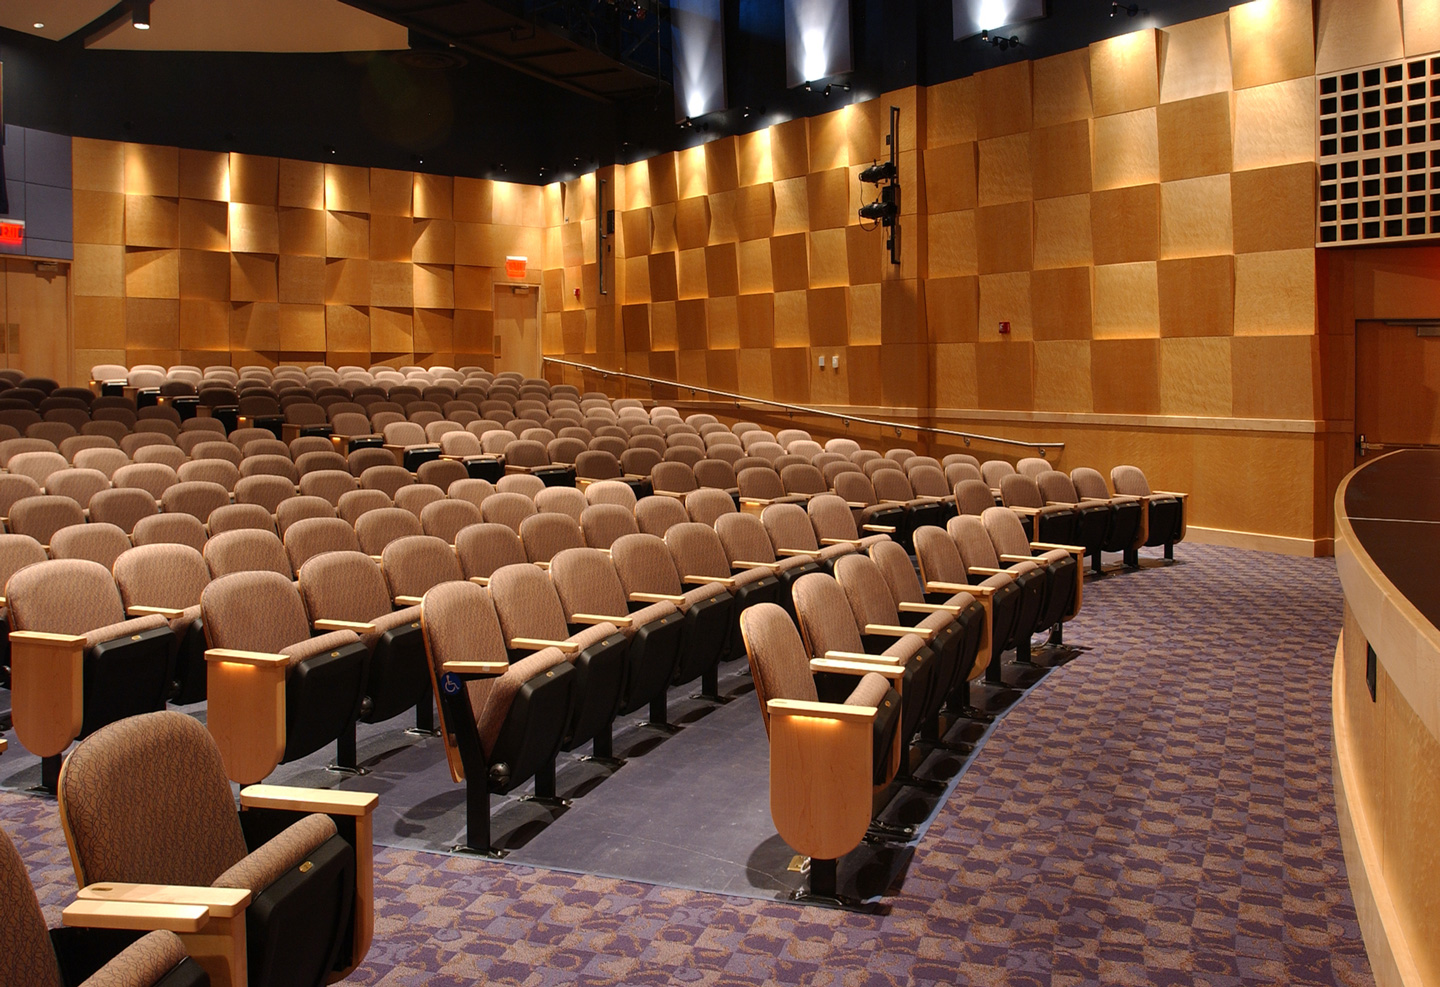 Sanply-maple-be-fla-mem-auditorium-1_8009892943_o